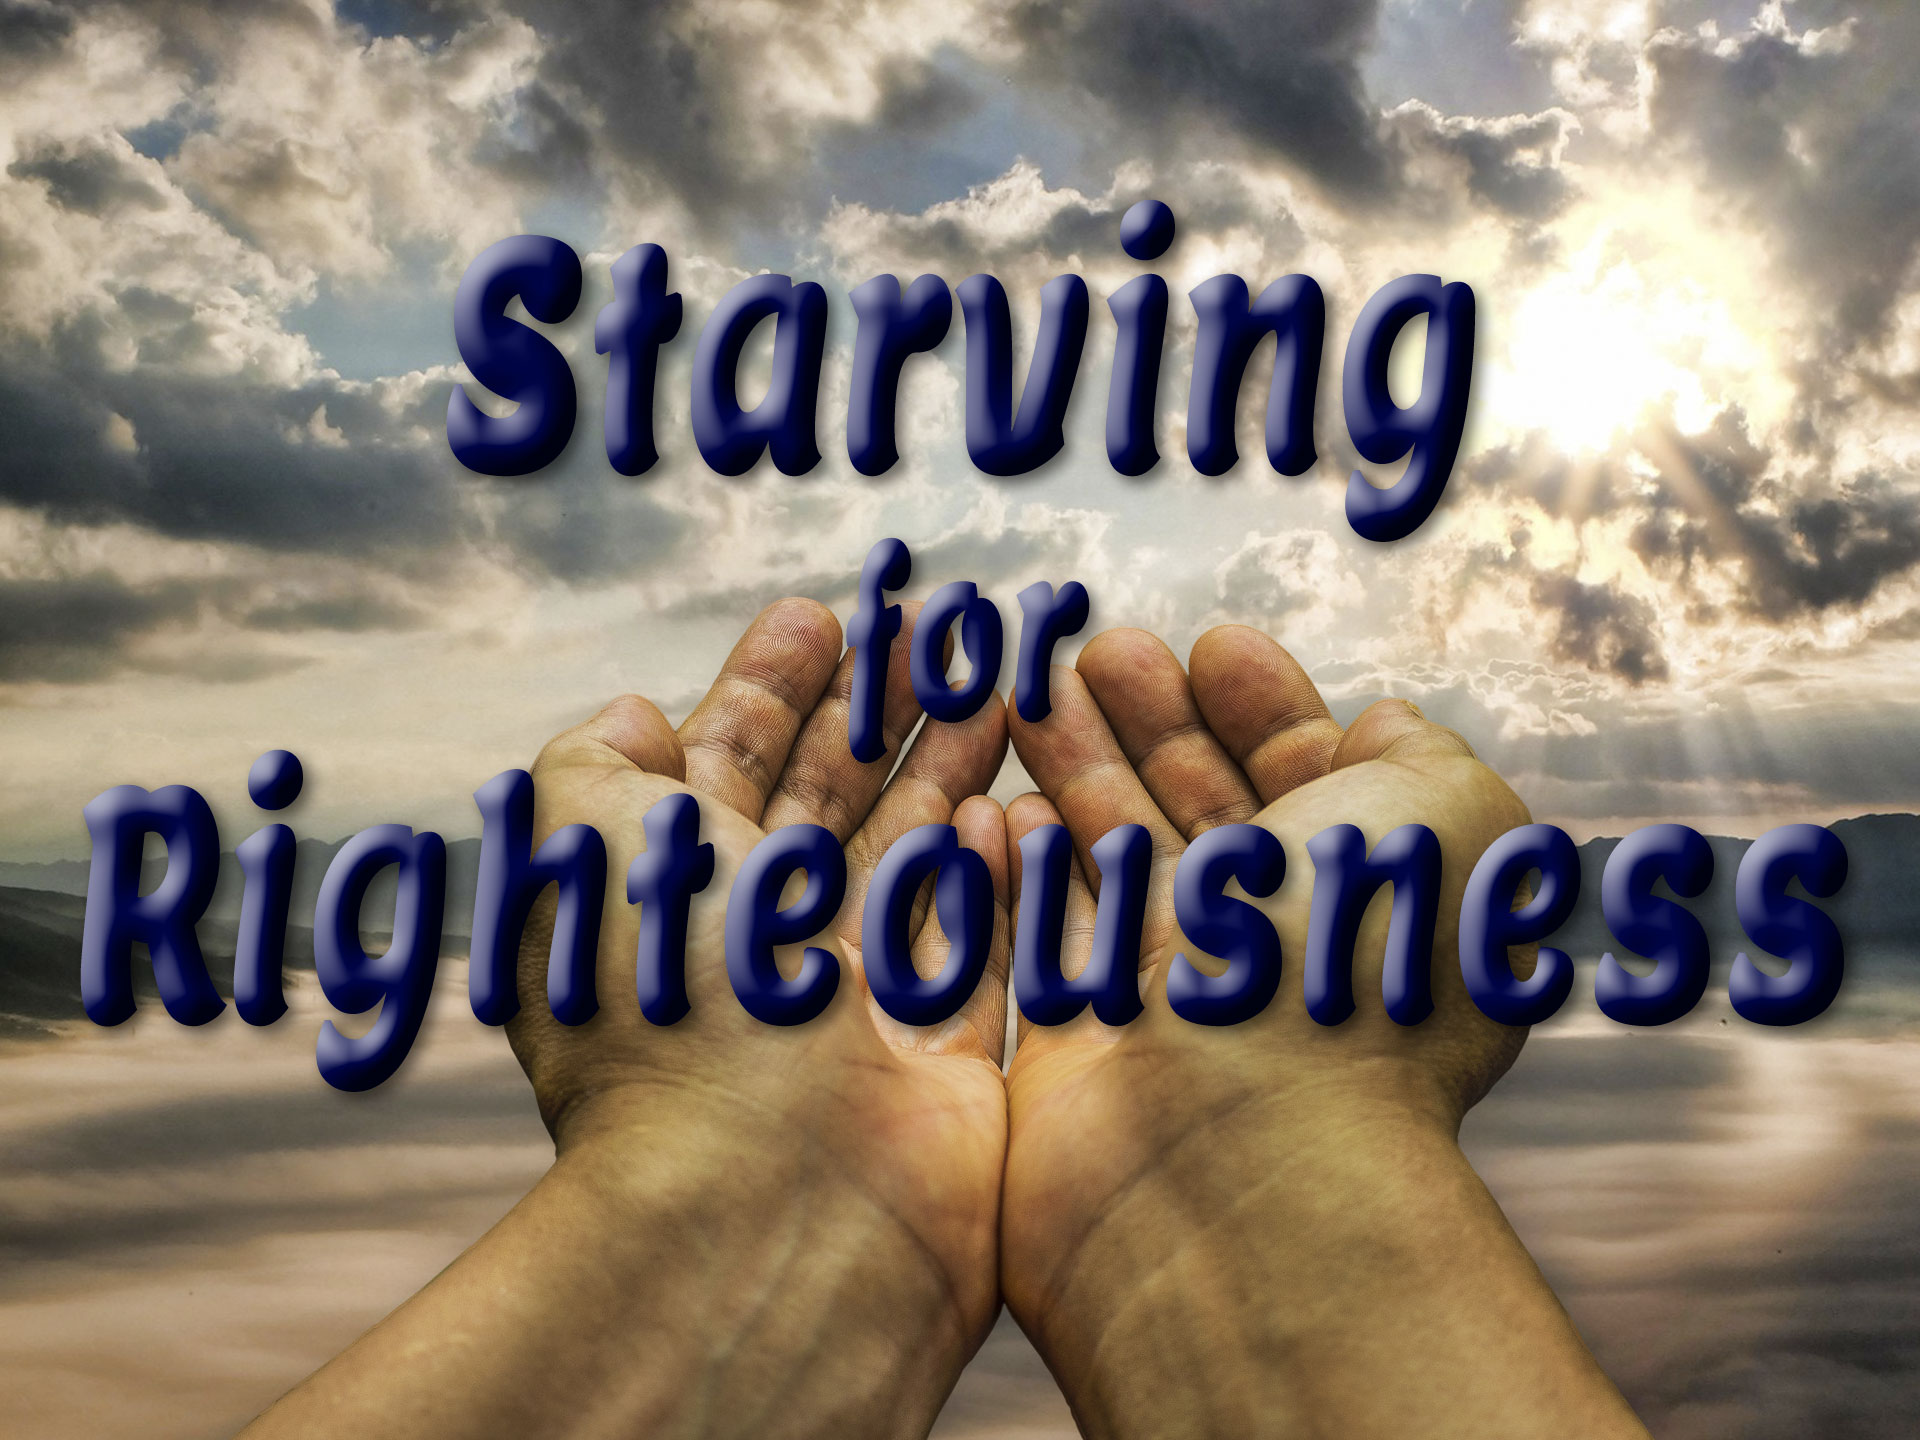 Starving for Righteousness